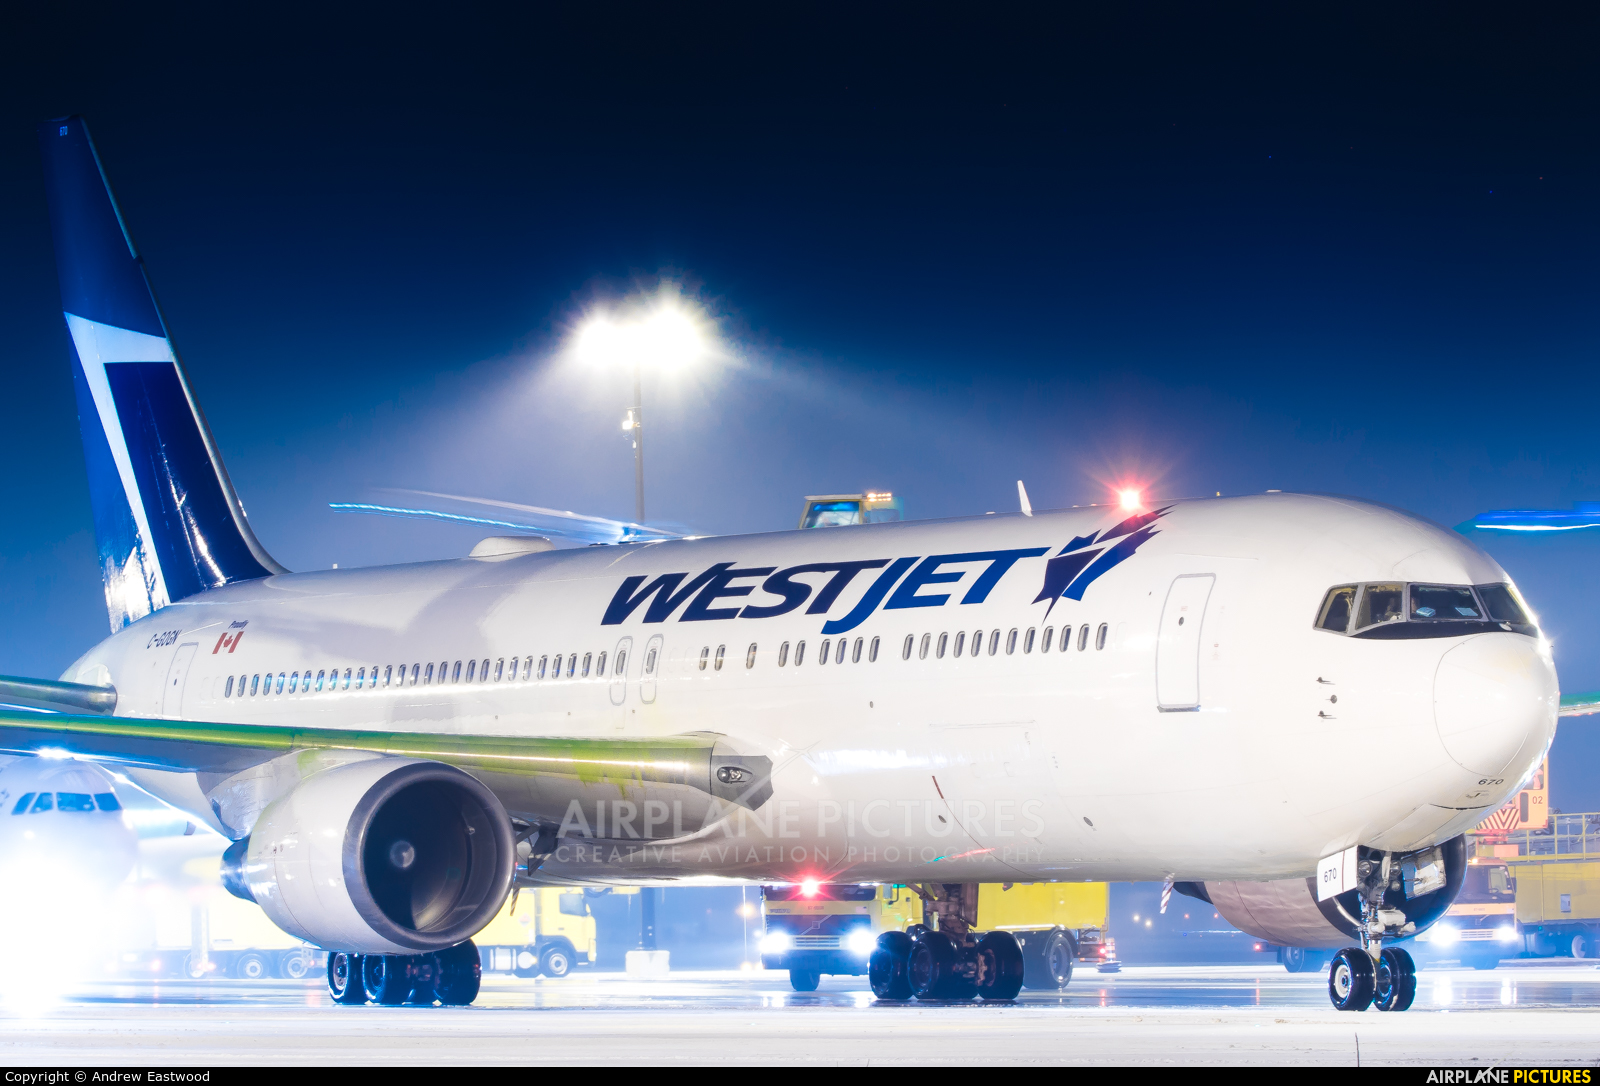 WestJet Airlines C-GOGN aircraft at Toronto - Pearson Intl, ON